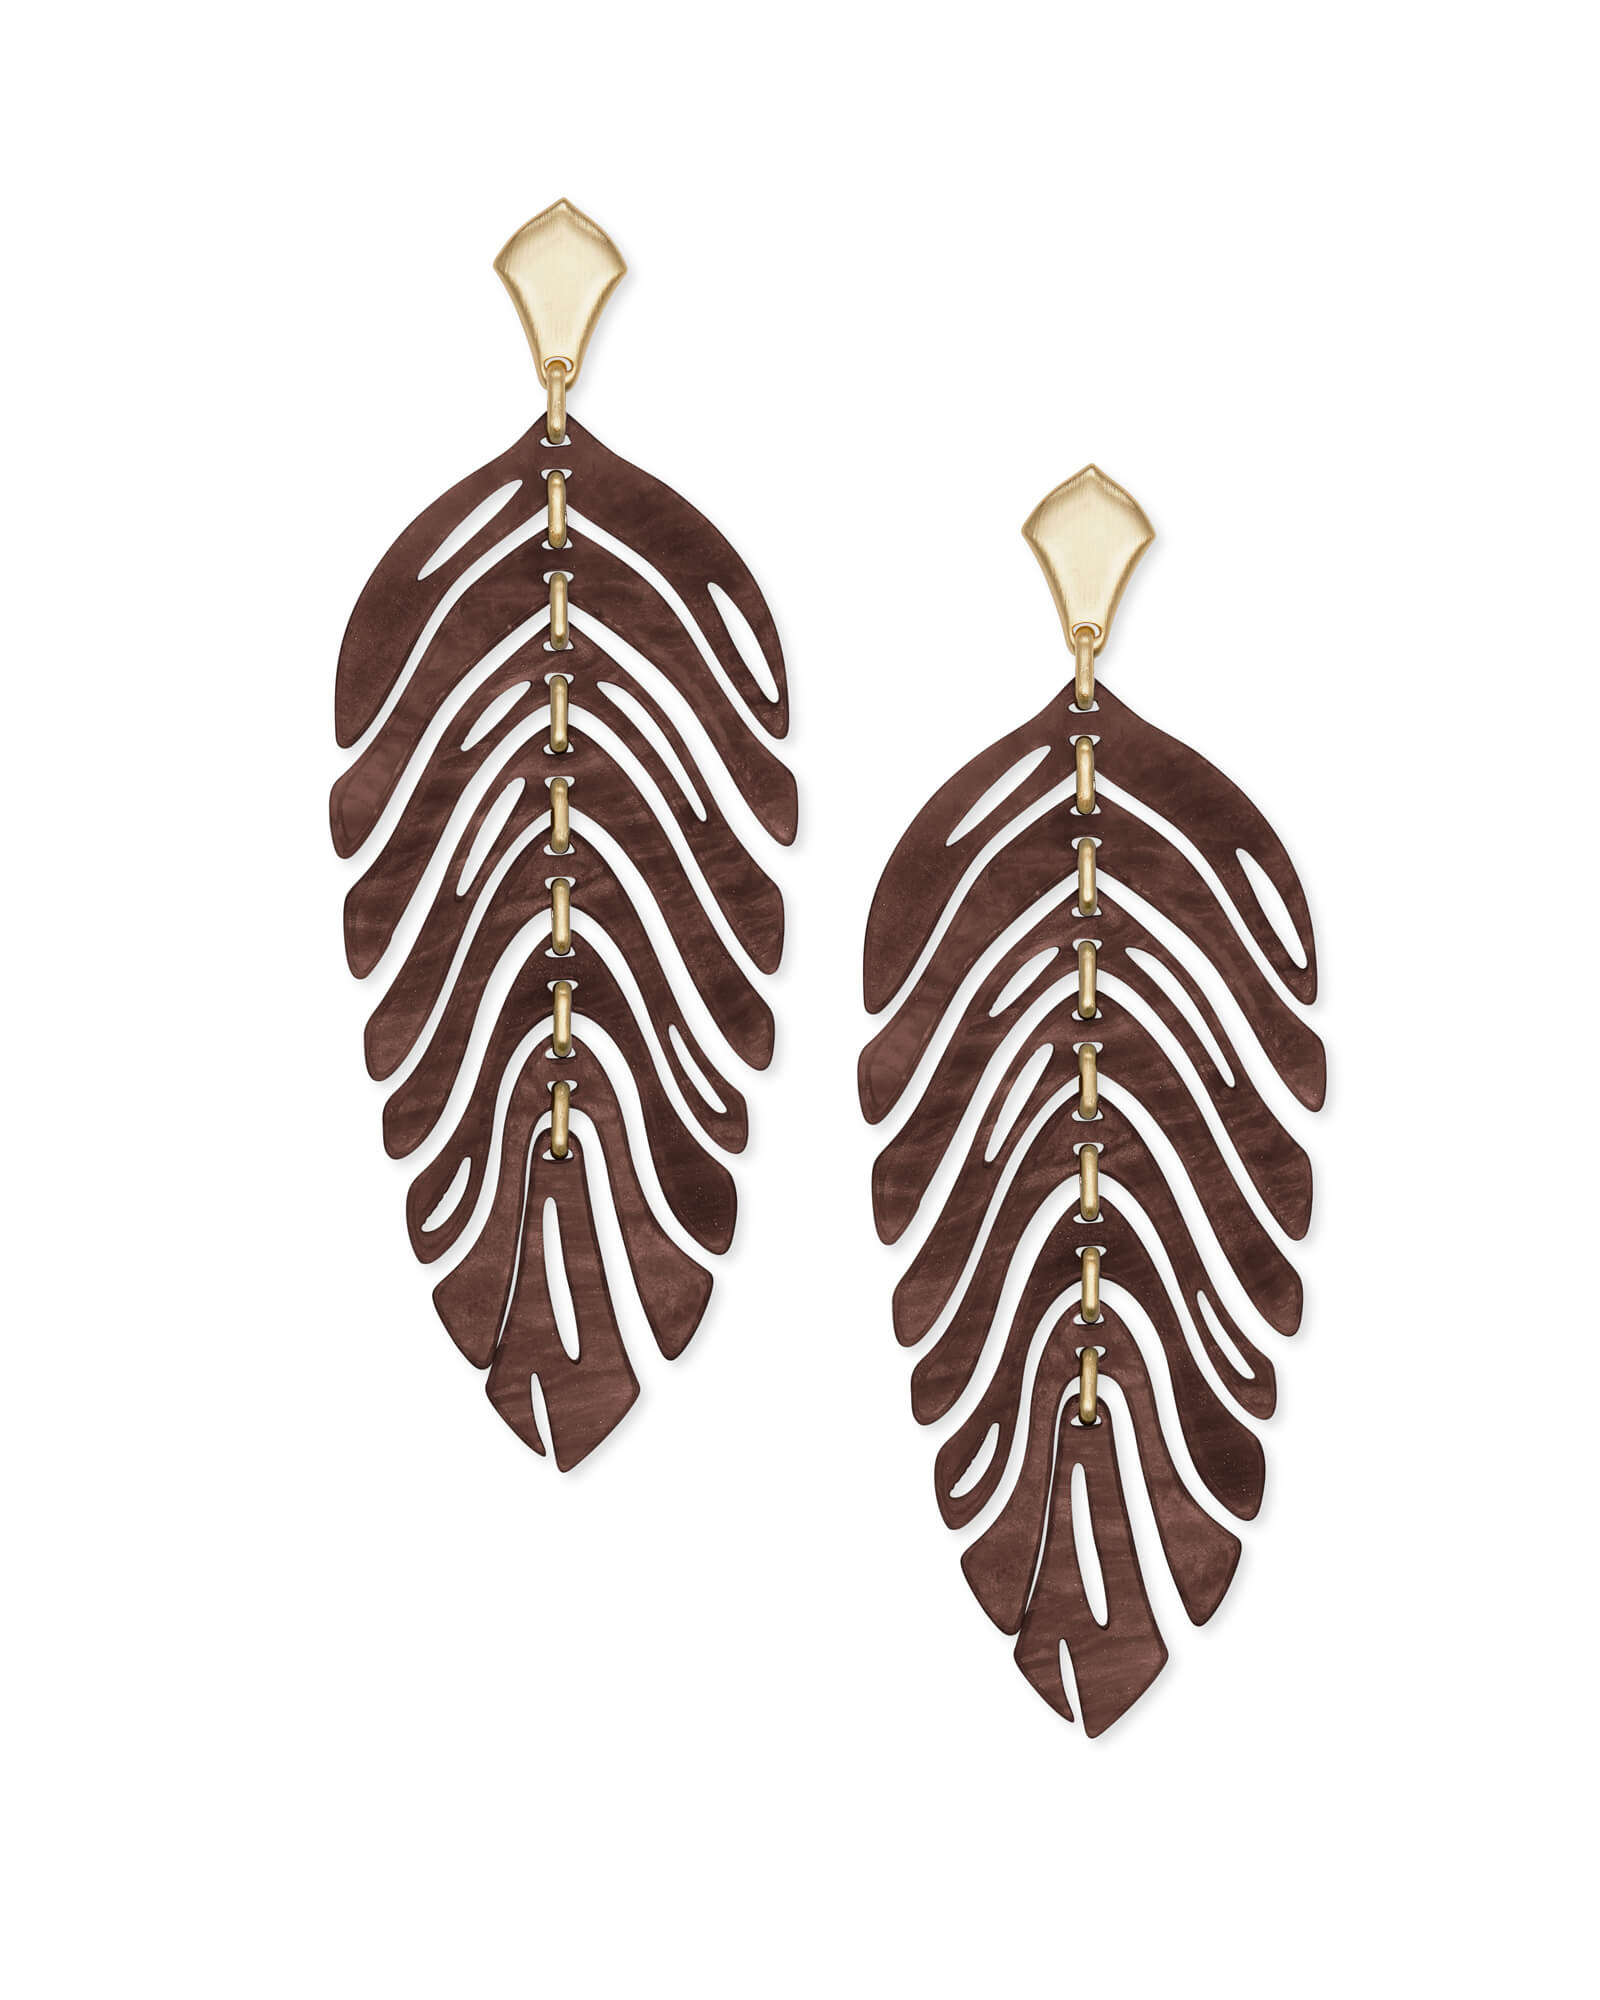 Lotus Gold Statement Earrings in Brown Marbled Acrylic